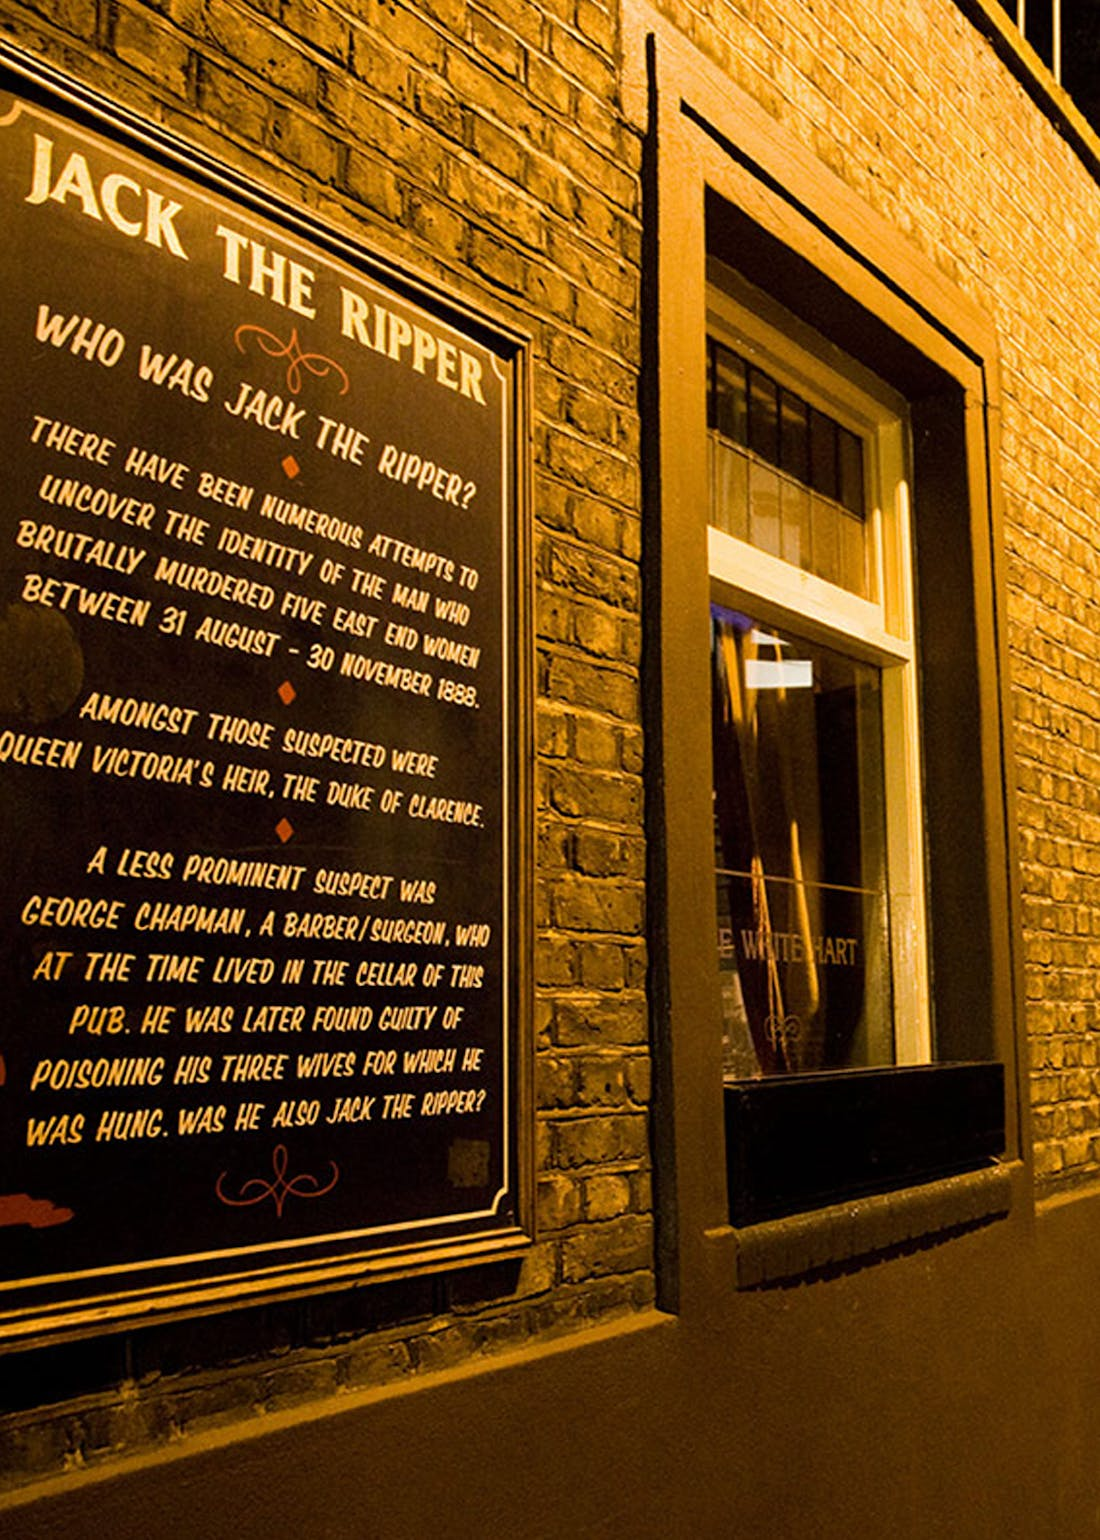 Virgin Experience Days Jack the Ripper Walking Tour for 2